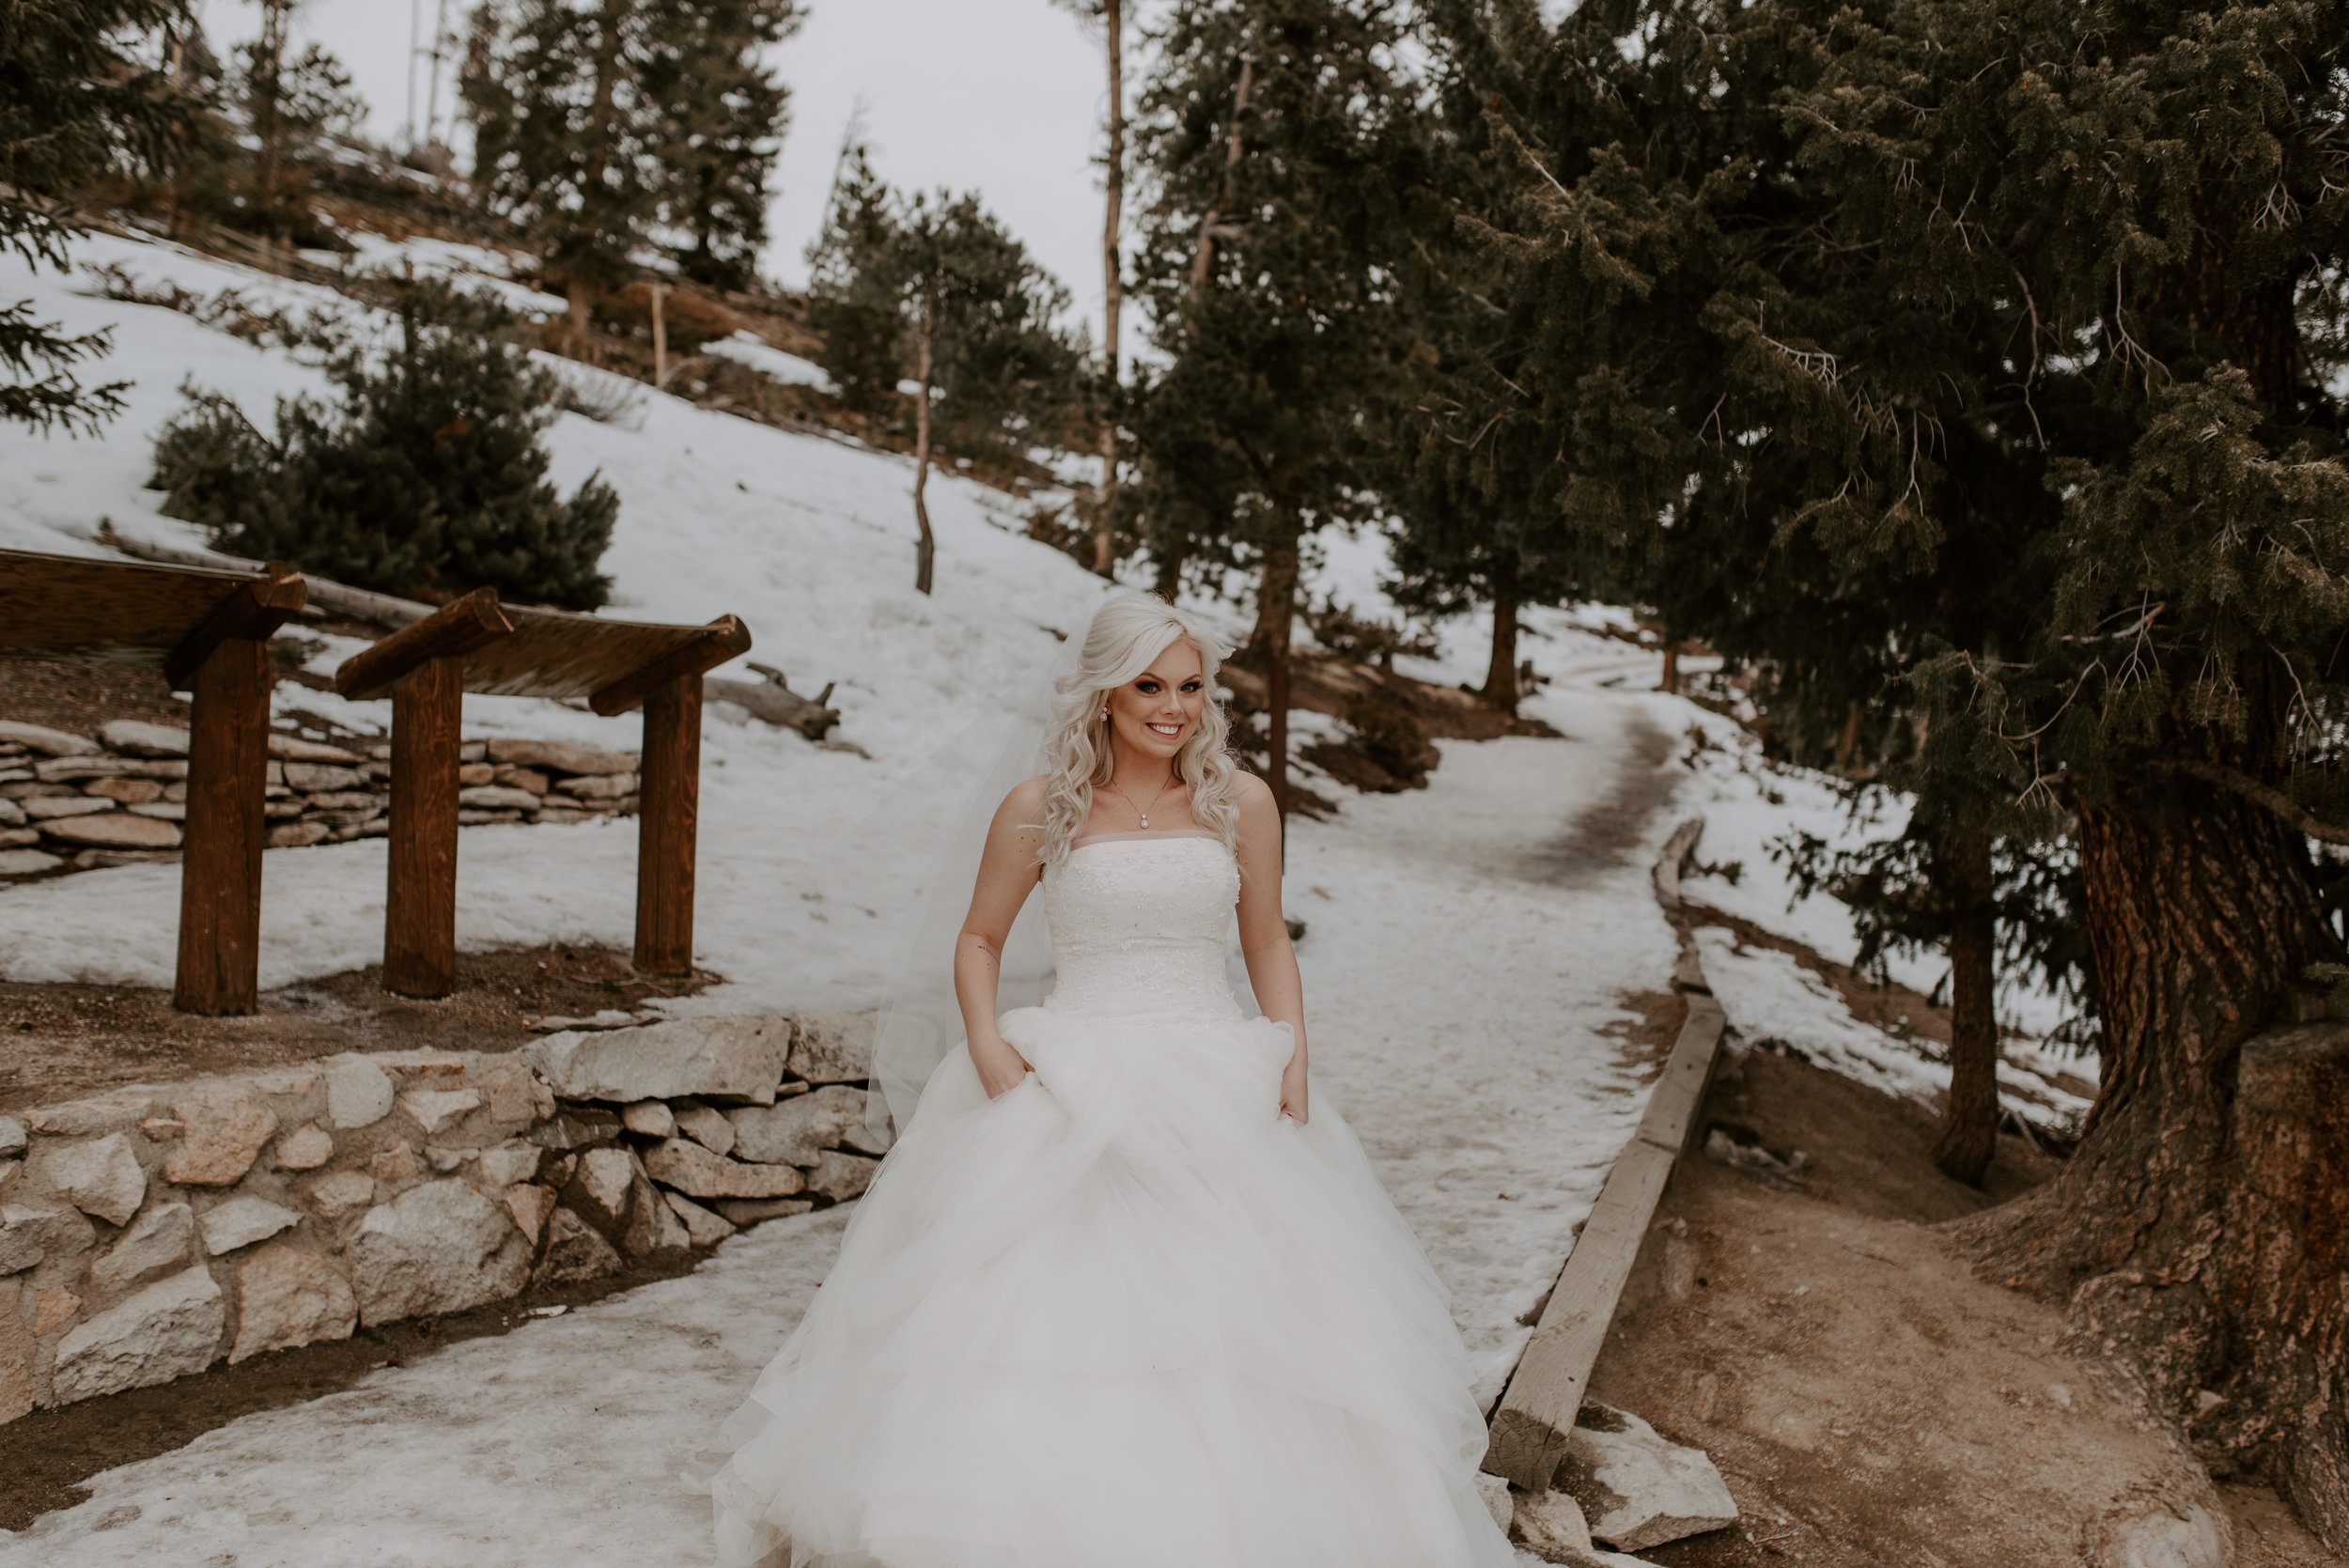 Colorado elopement photographer, first look at Sapphire Point in Dillon, CO.